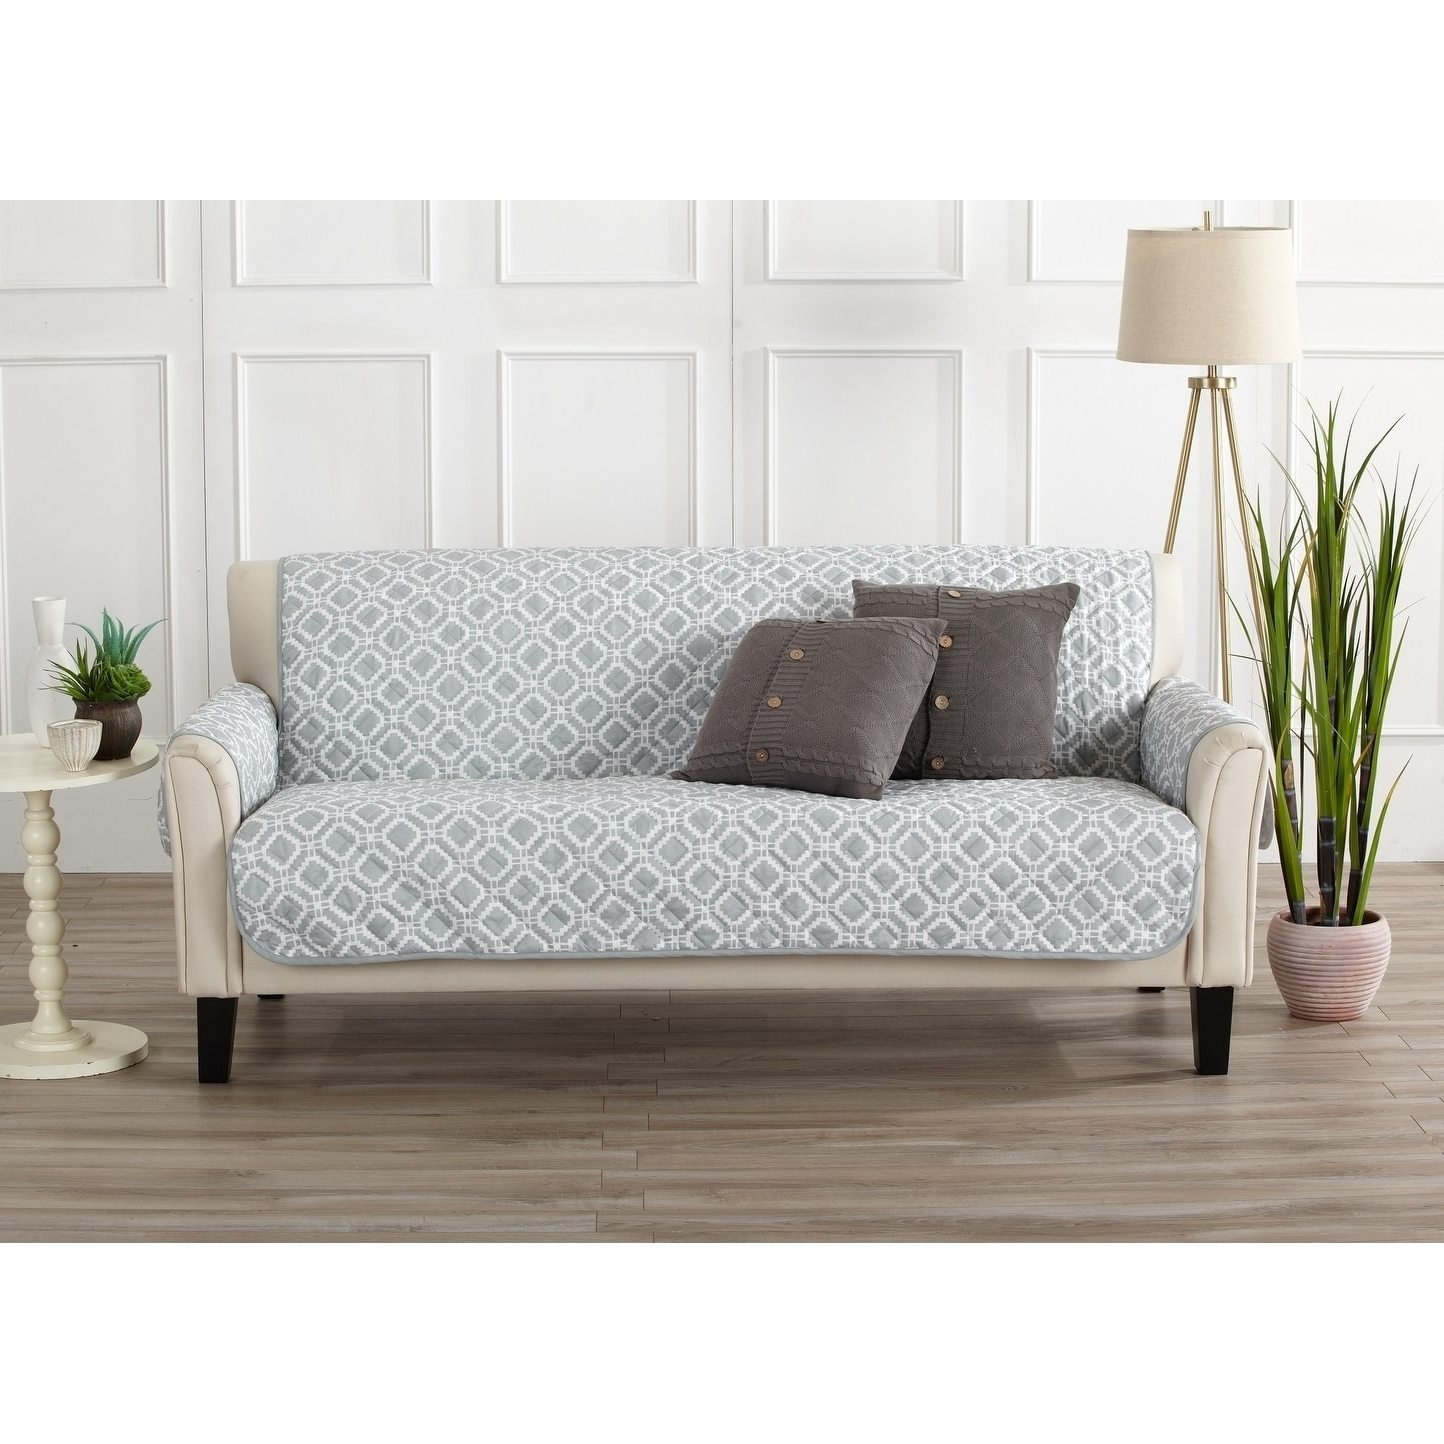 MN 1 Piece Storm Grey Geometric Sofa Protector, Gray Medallion Diamond Shape Pattern Circle Dot Ikat Jacquard Modern Sleek Trendy Couch Protection Cover Pets Animals Covers, Polyester